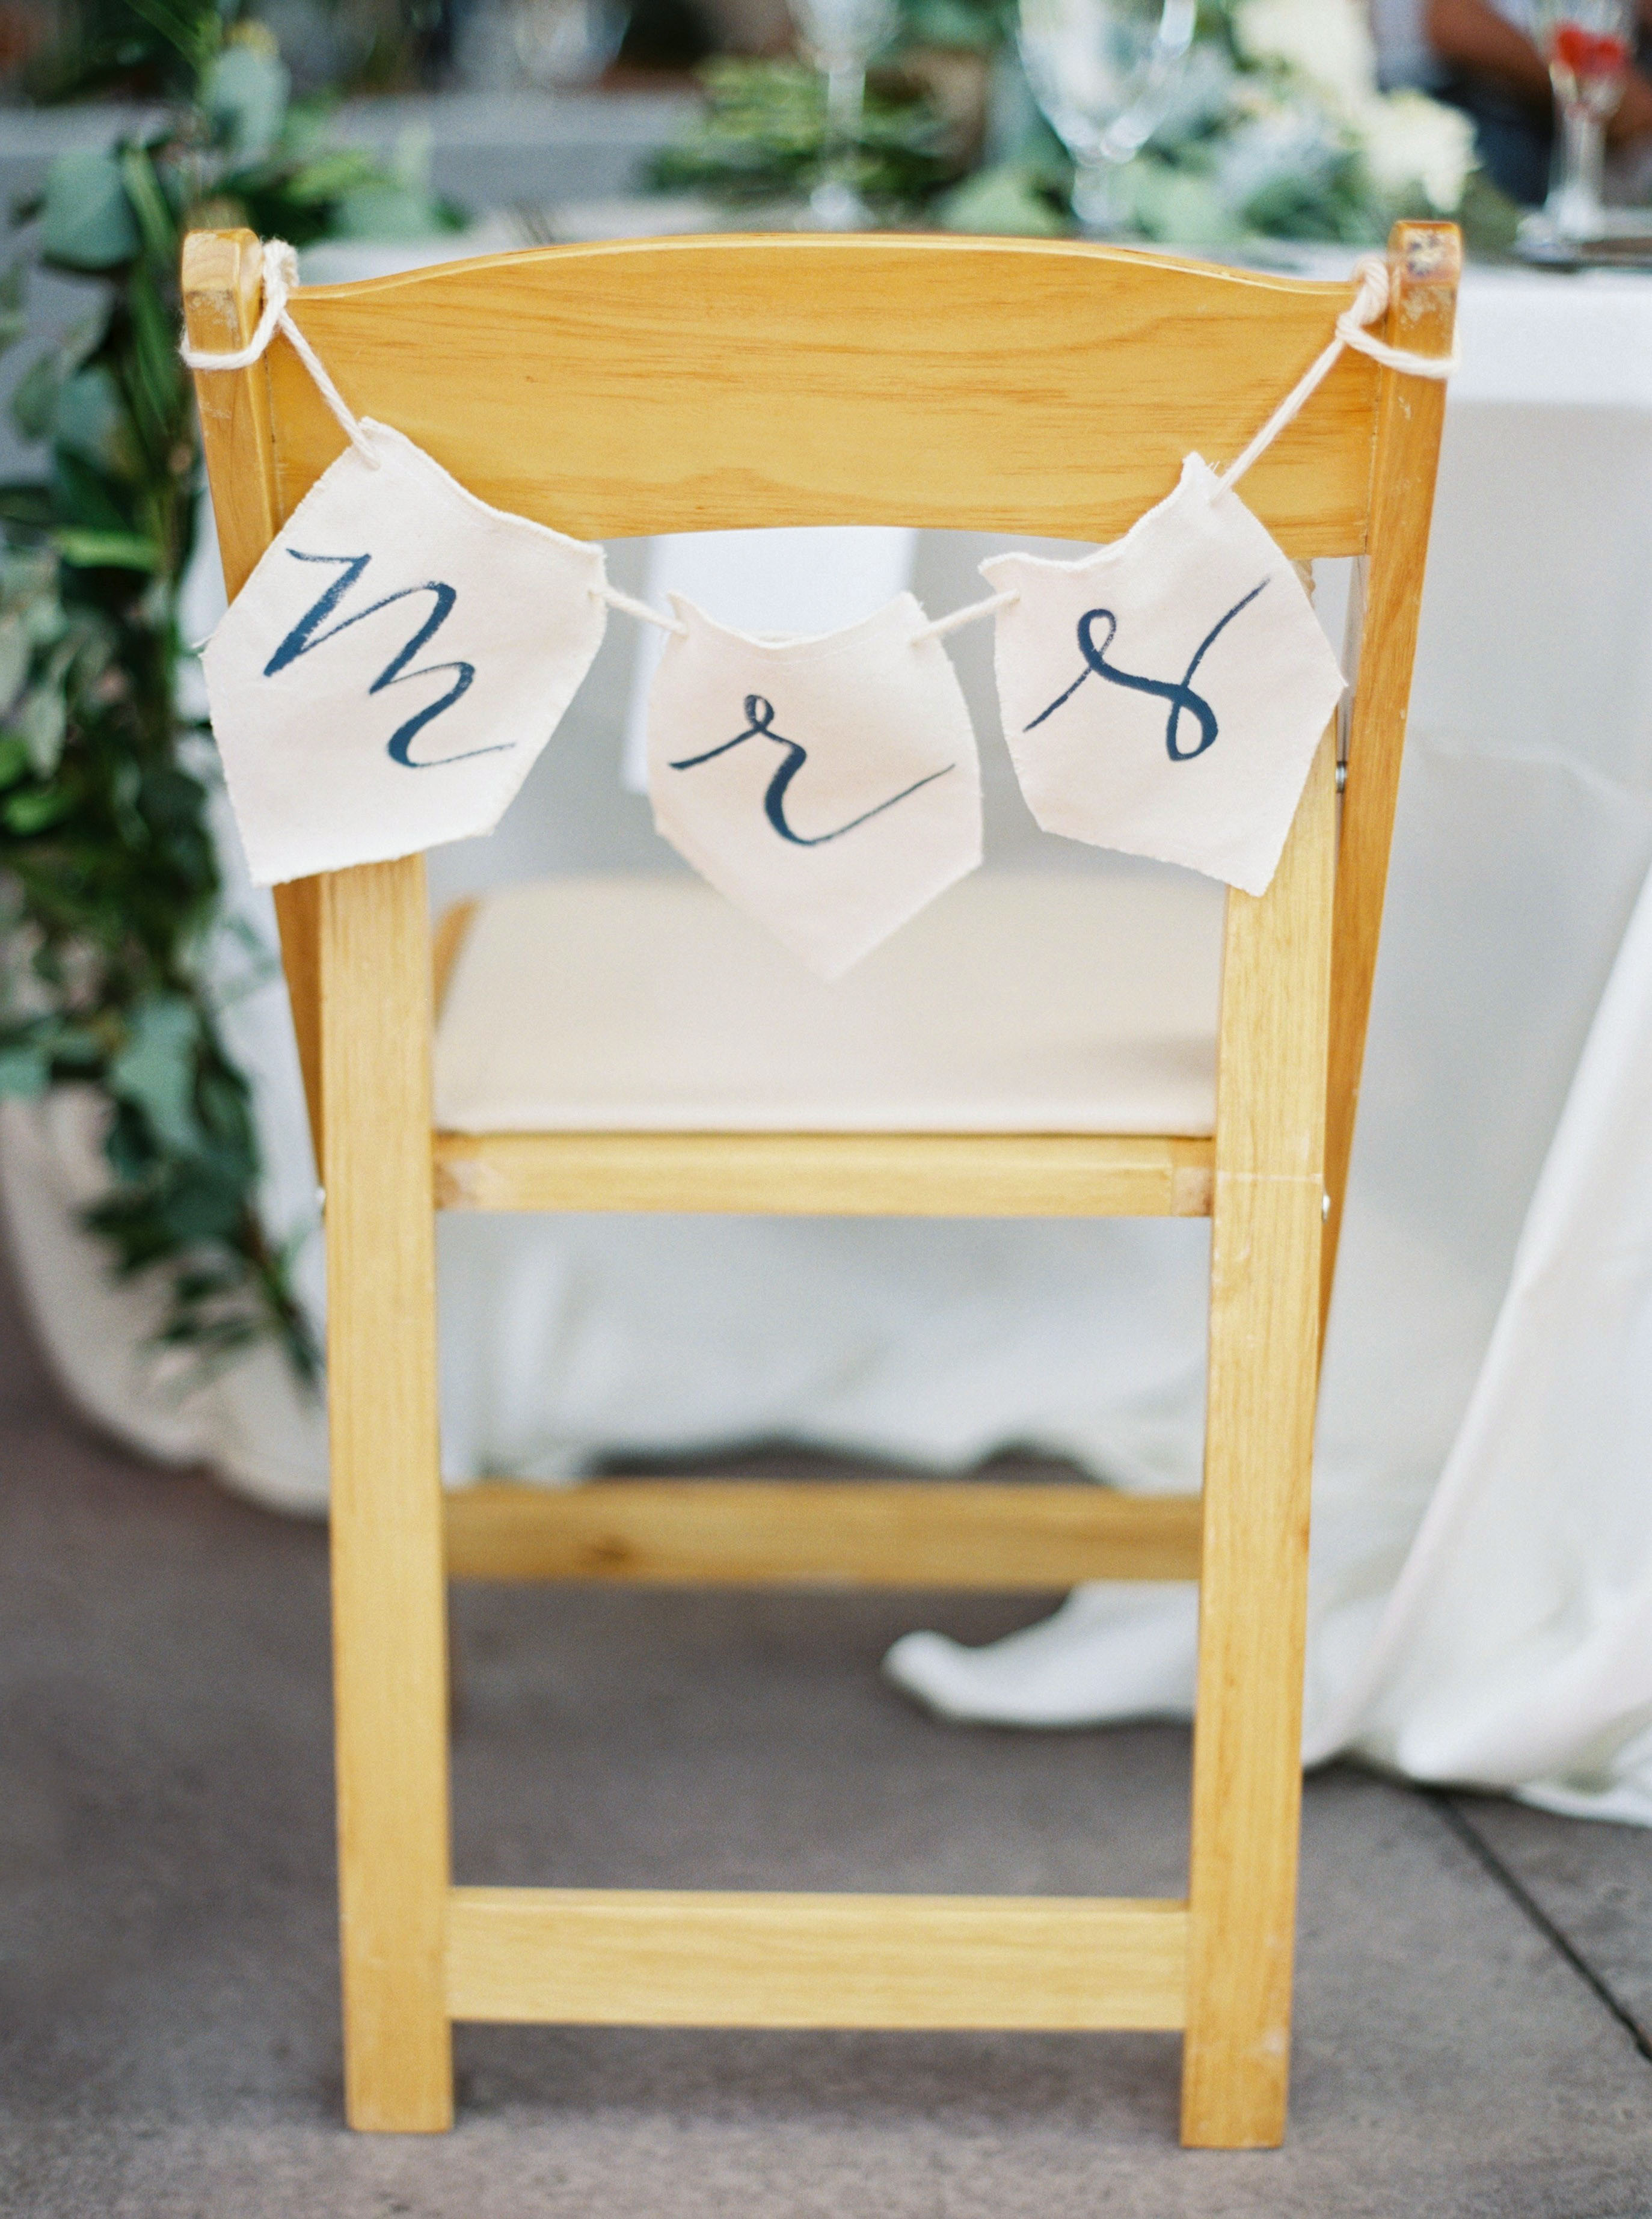 mrs sign pennants cursive letters on a rope